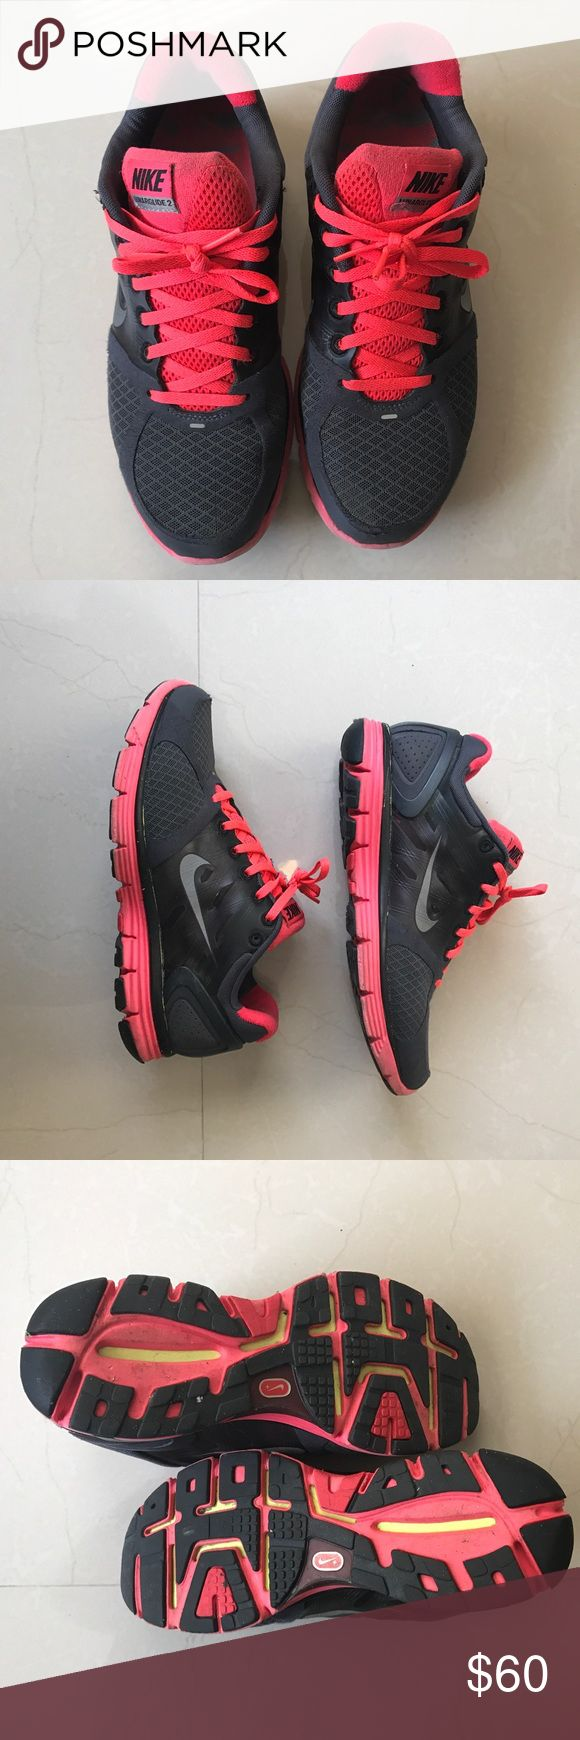 Nike LunarGlide 2's Nike LunarGlide 2's. Have been worn but are in great condition. Nike Shoes